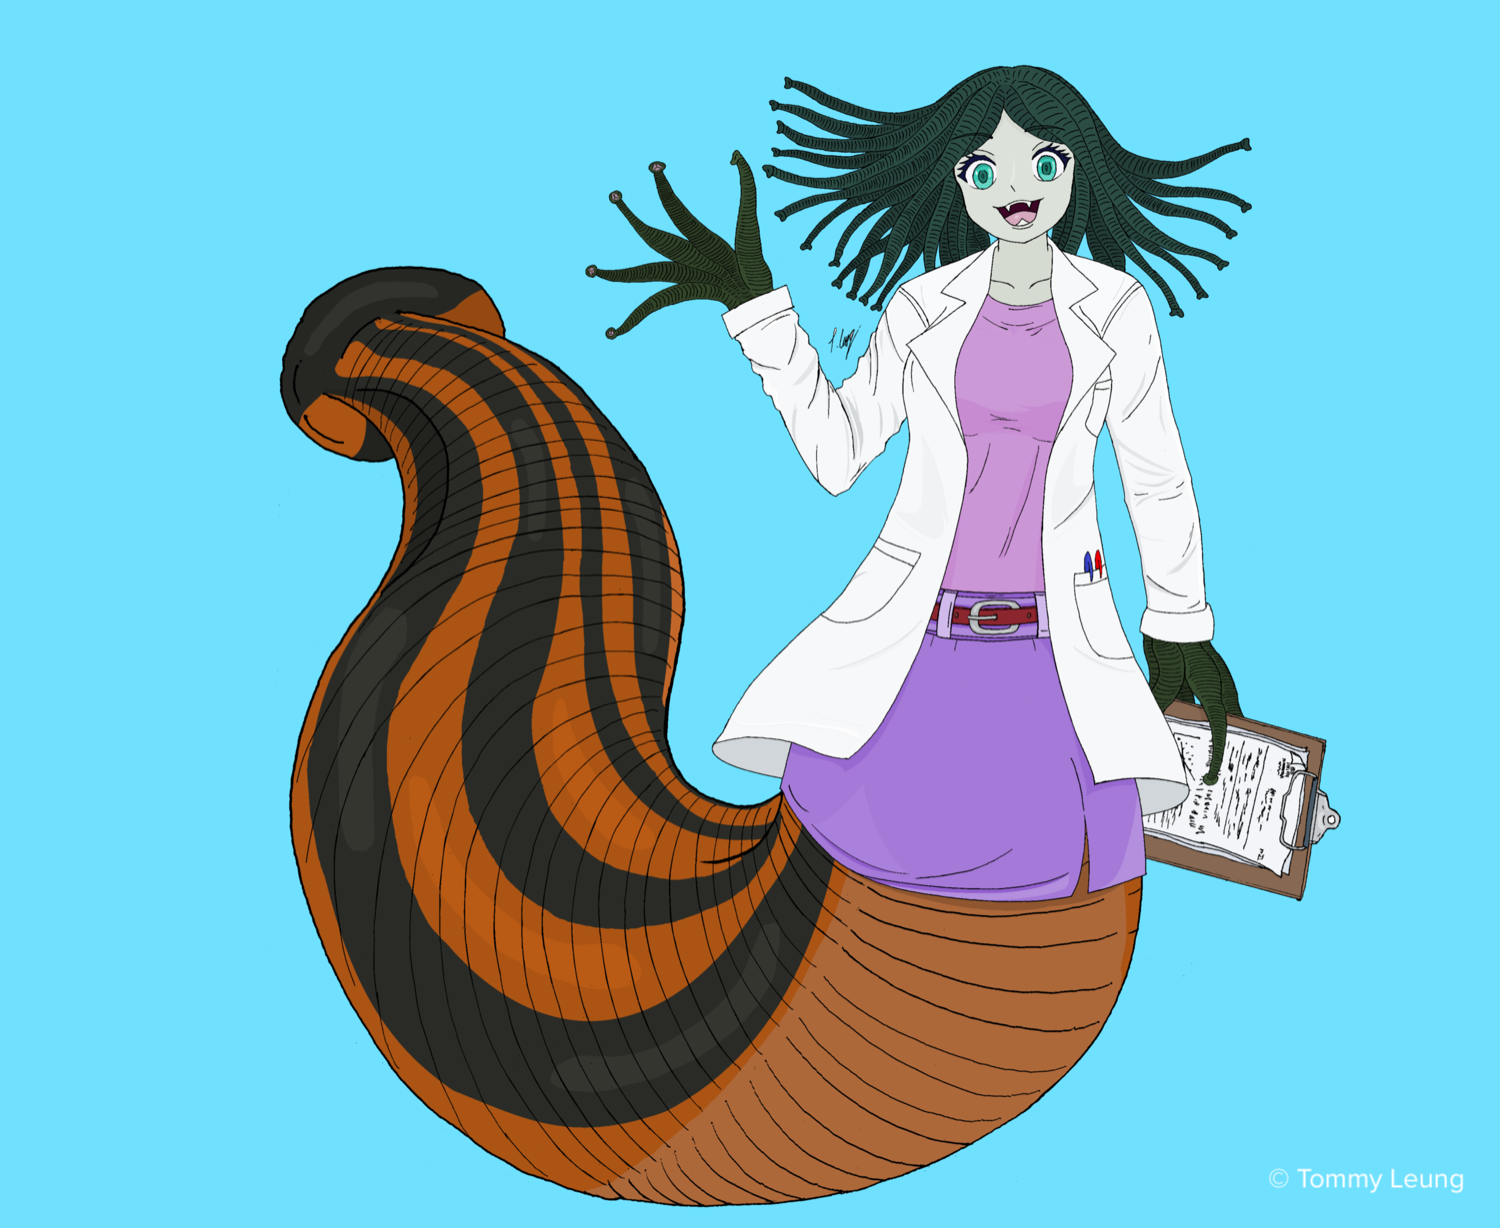 a colored illustration of a monster girl with sucker fingers and leech body, wearing a doctor's lab coat and holding a clipboard